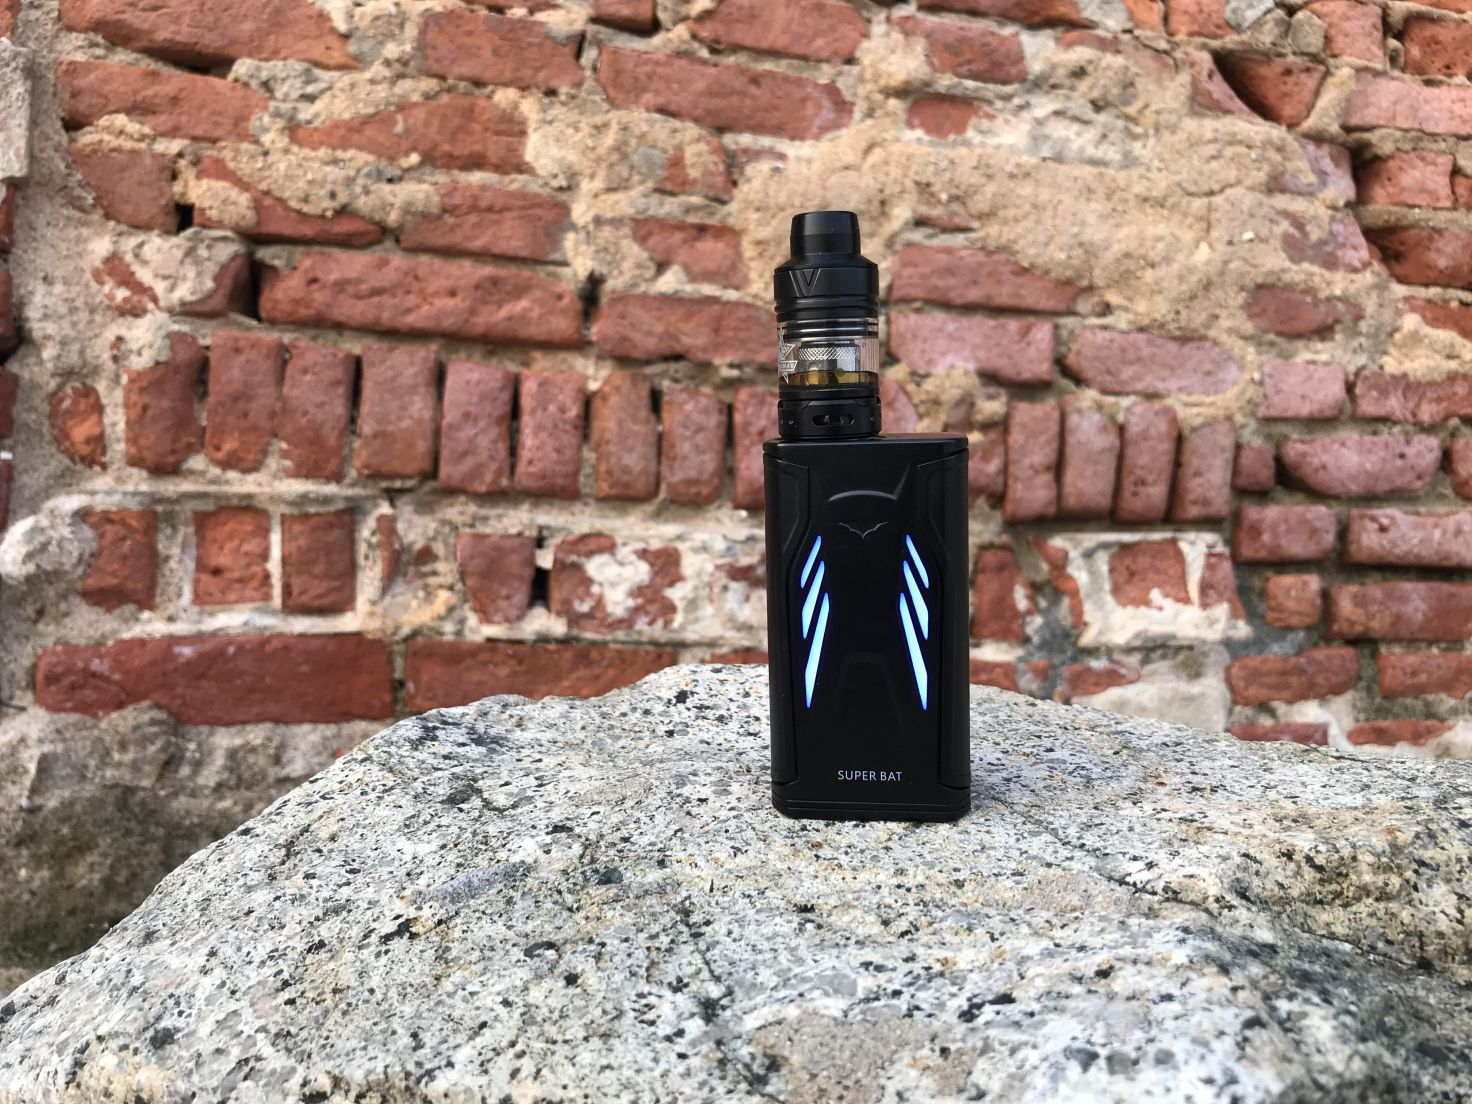 Vaptio Super Bat 220W TC Kit Preview